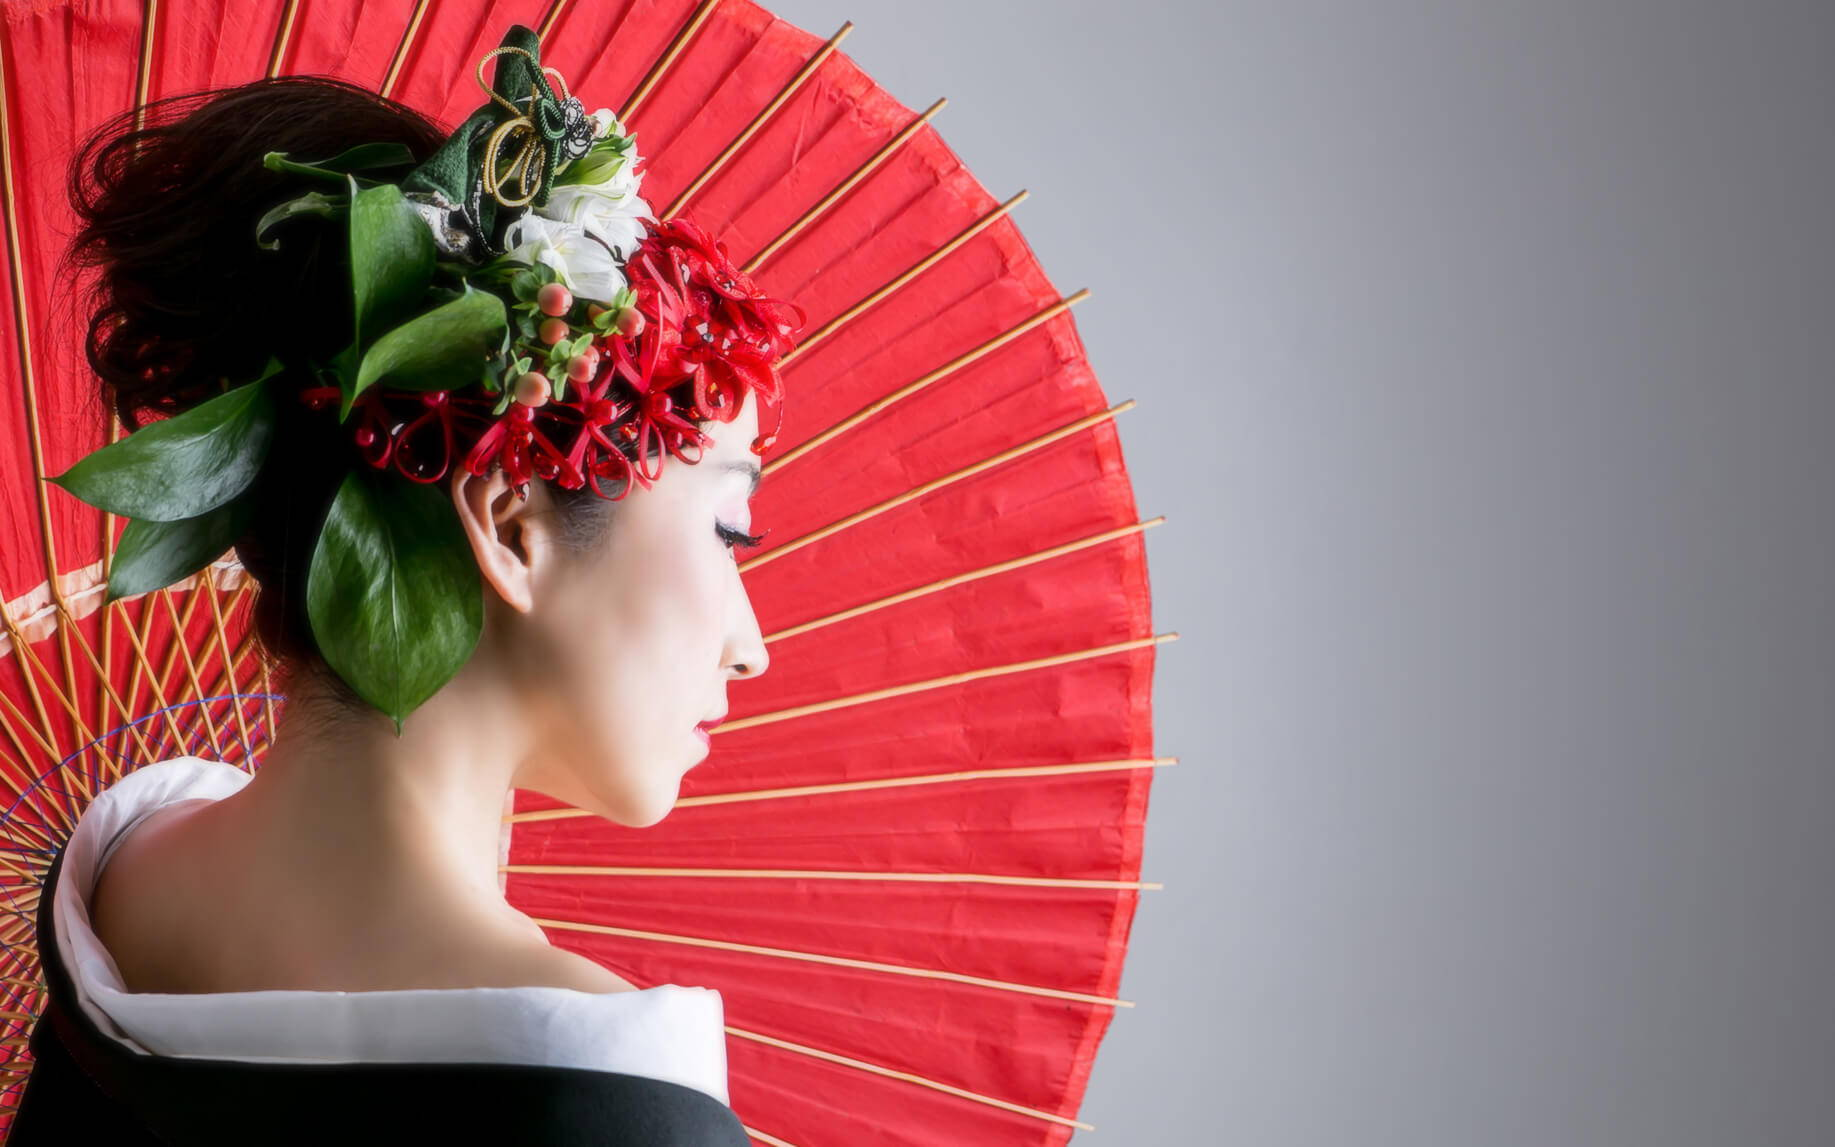 Geisha with a red oil-paper umbrella